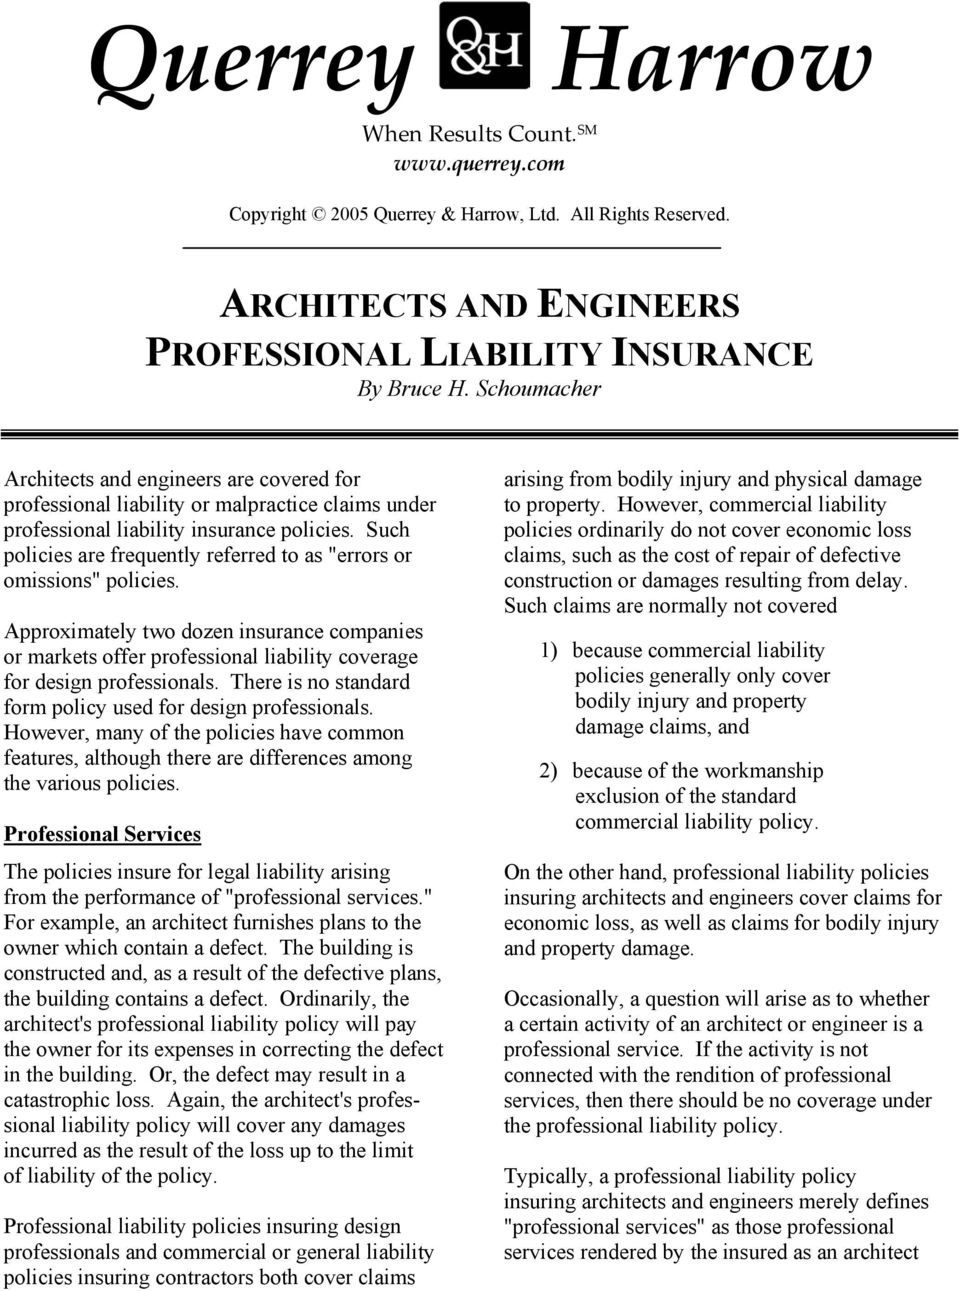 "Such policies are frequently referred to as ""errors or omissions"" policies. Approximately two dozen insurance companies or markets offer professional liability coverage for design professionals."